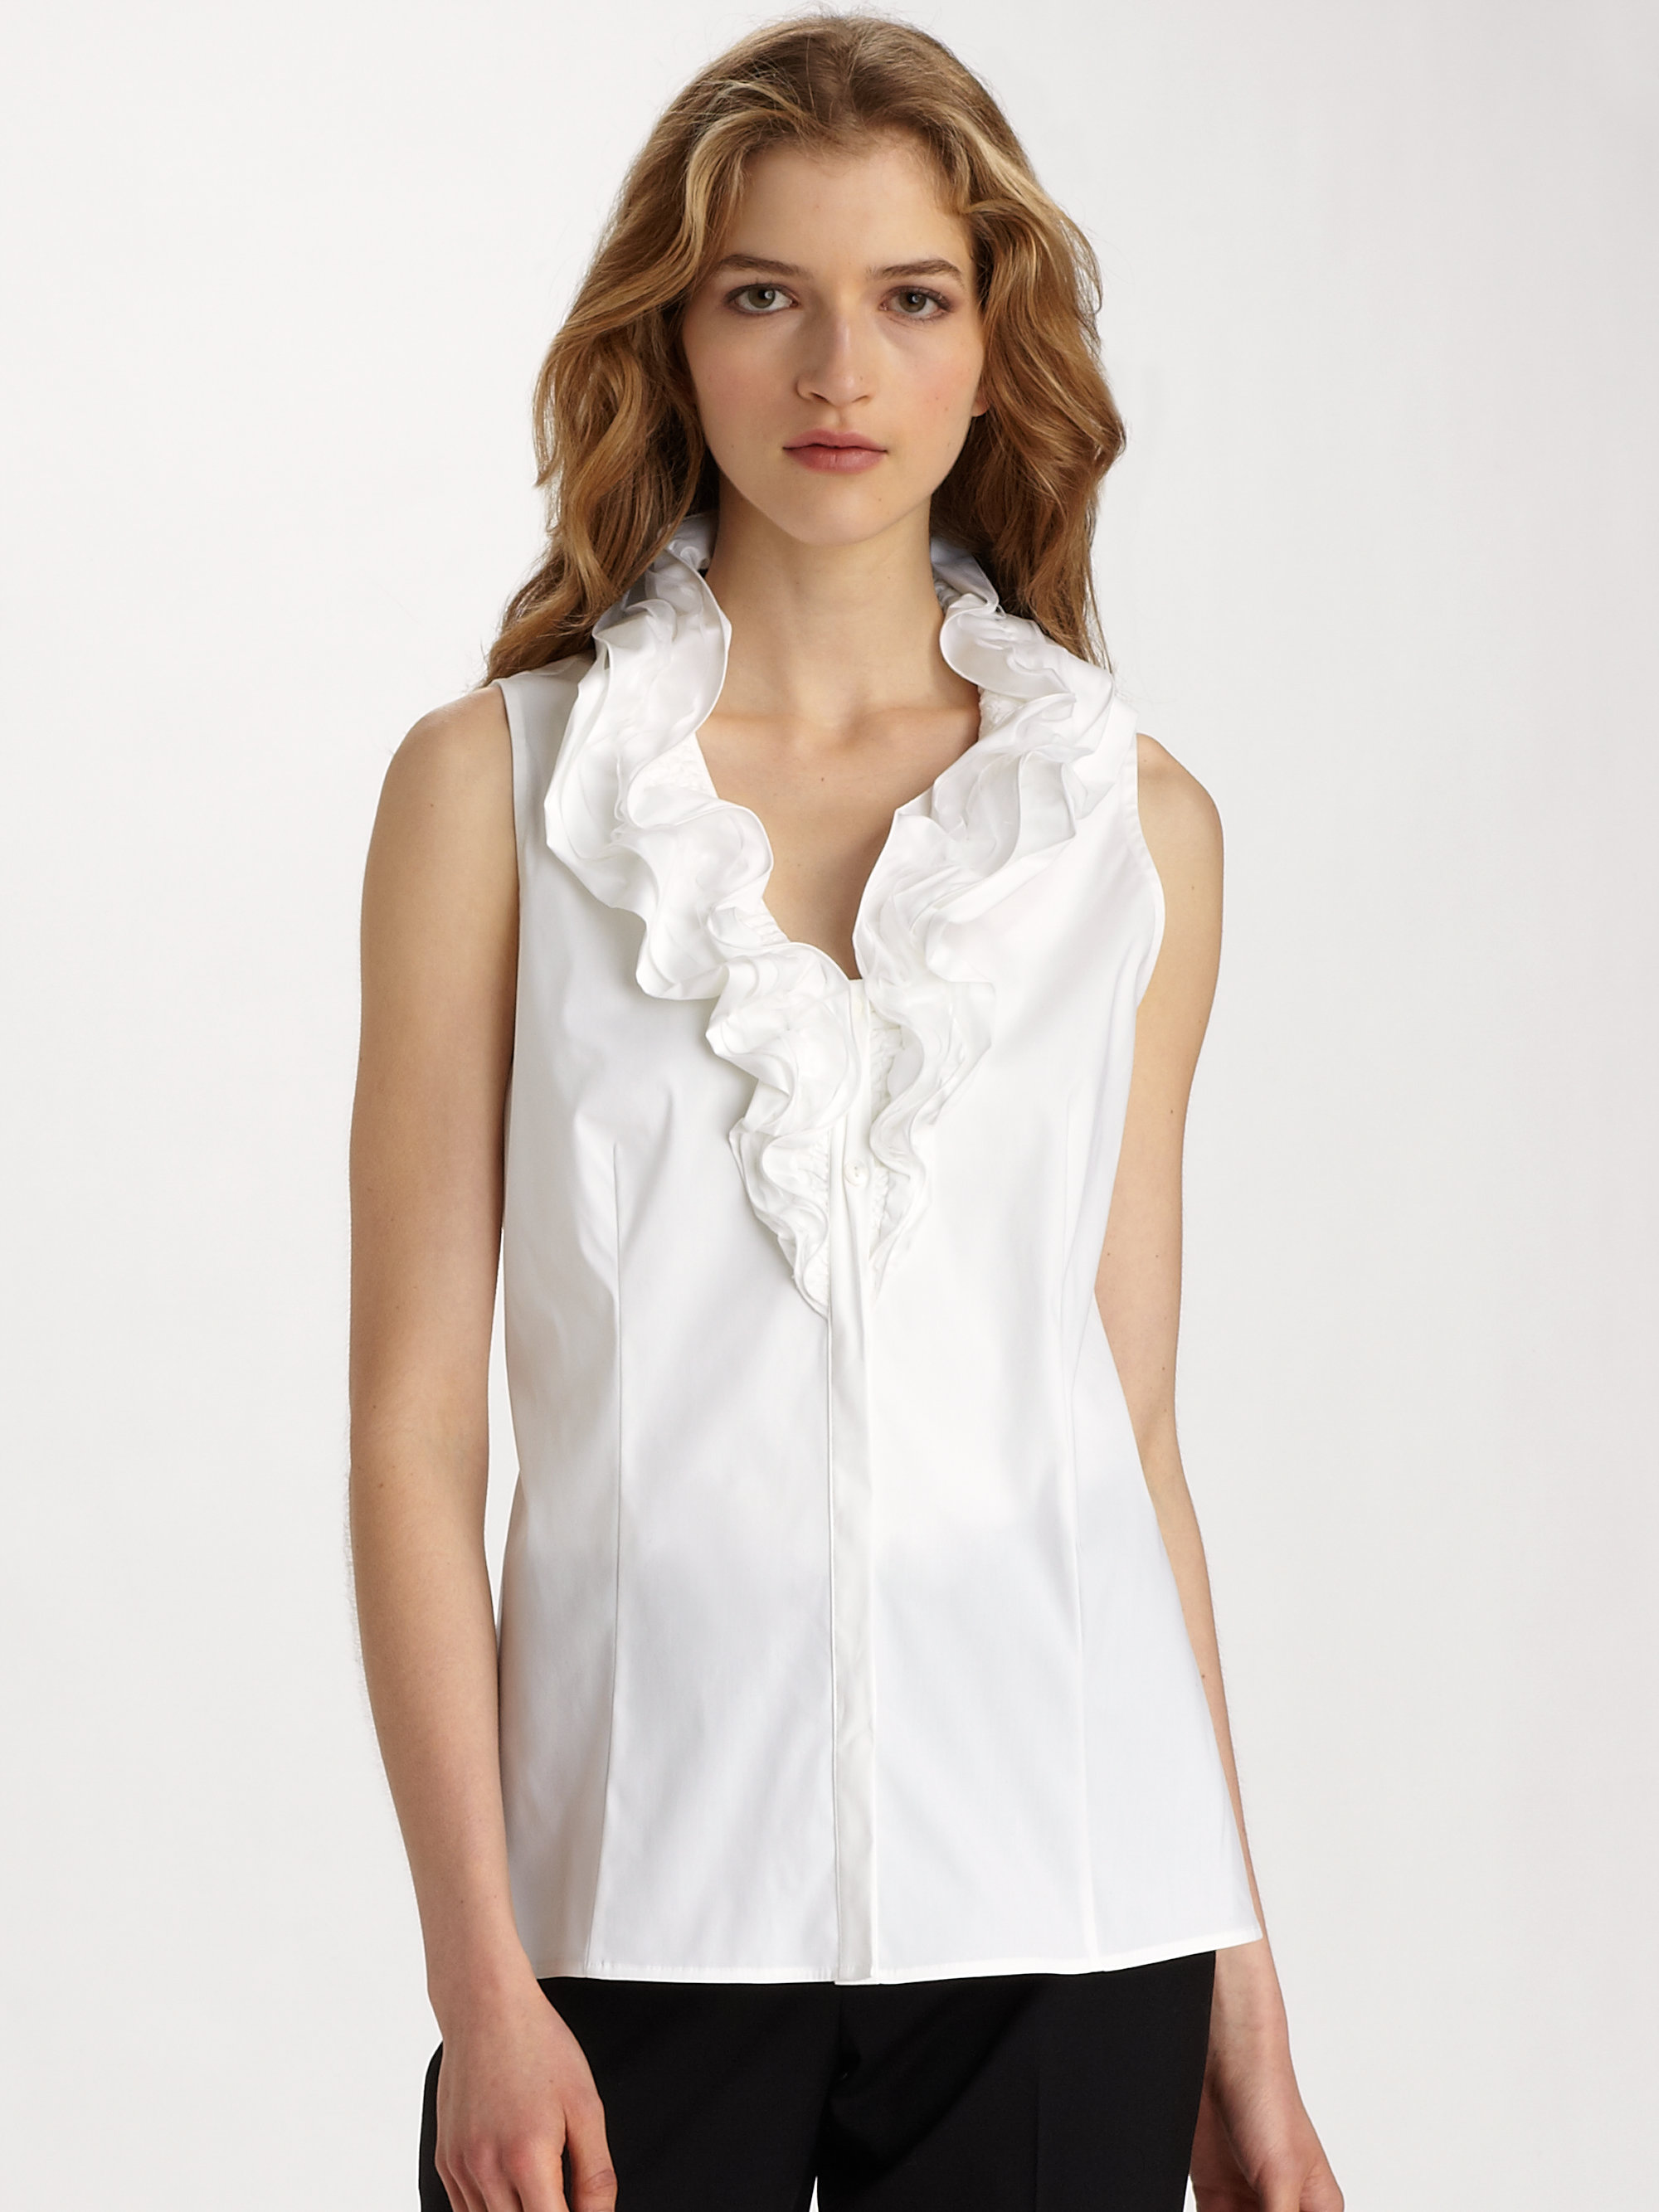 Ruffle Neck Sleeveless Blouse 51